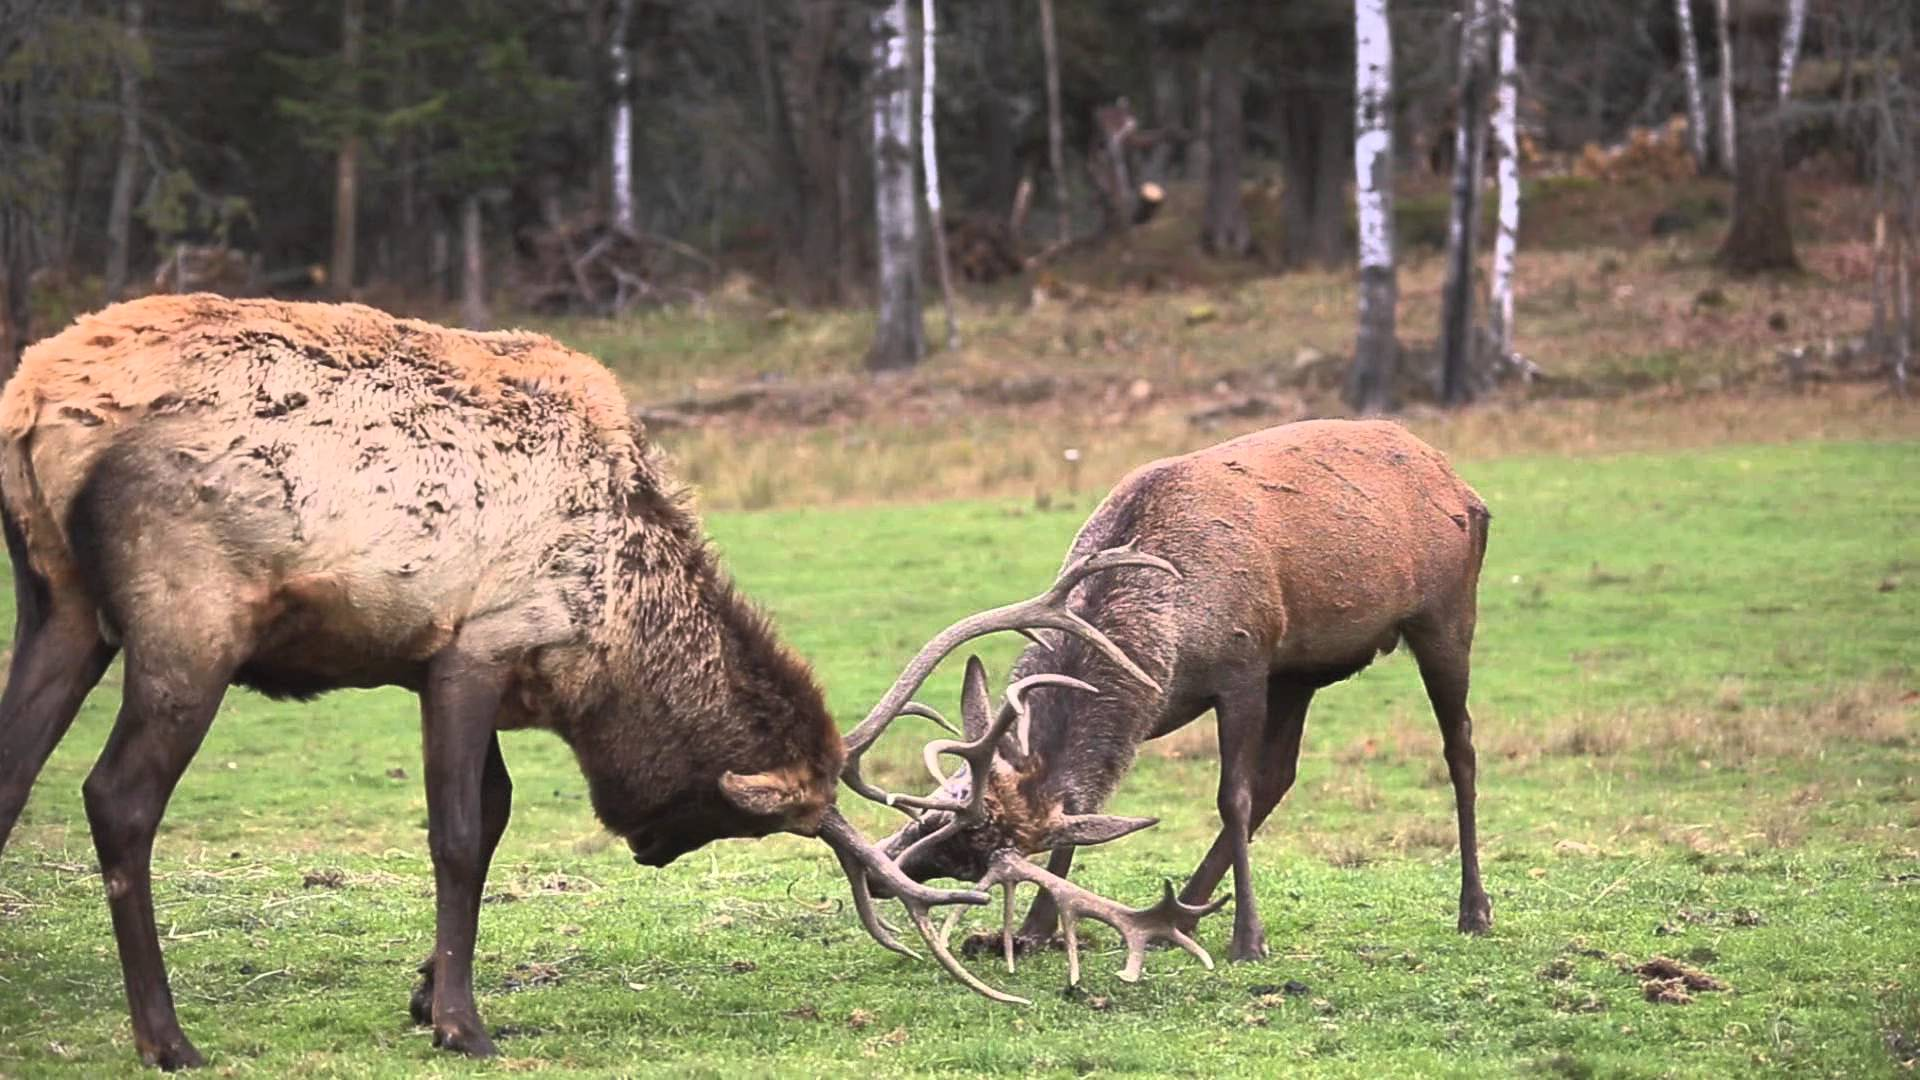 Elk and deer in a fight - YouTube